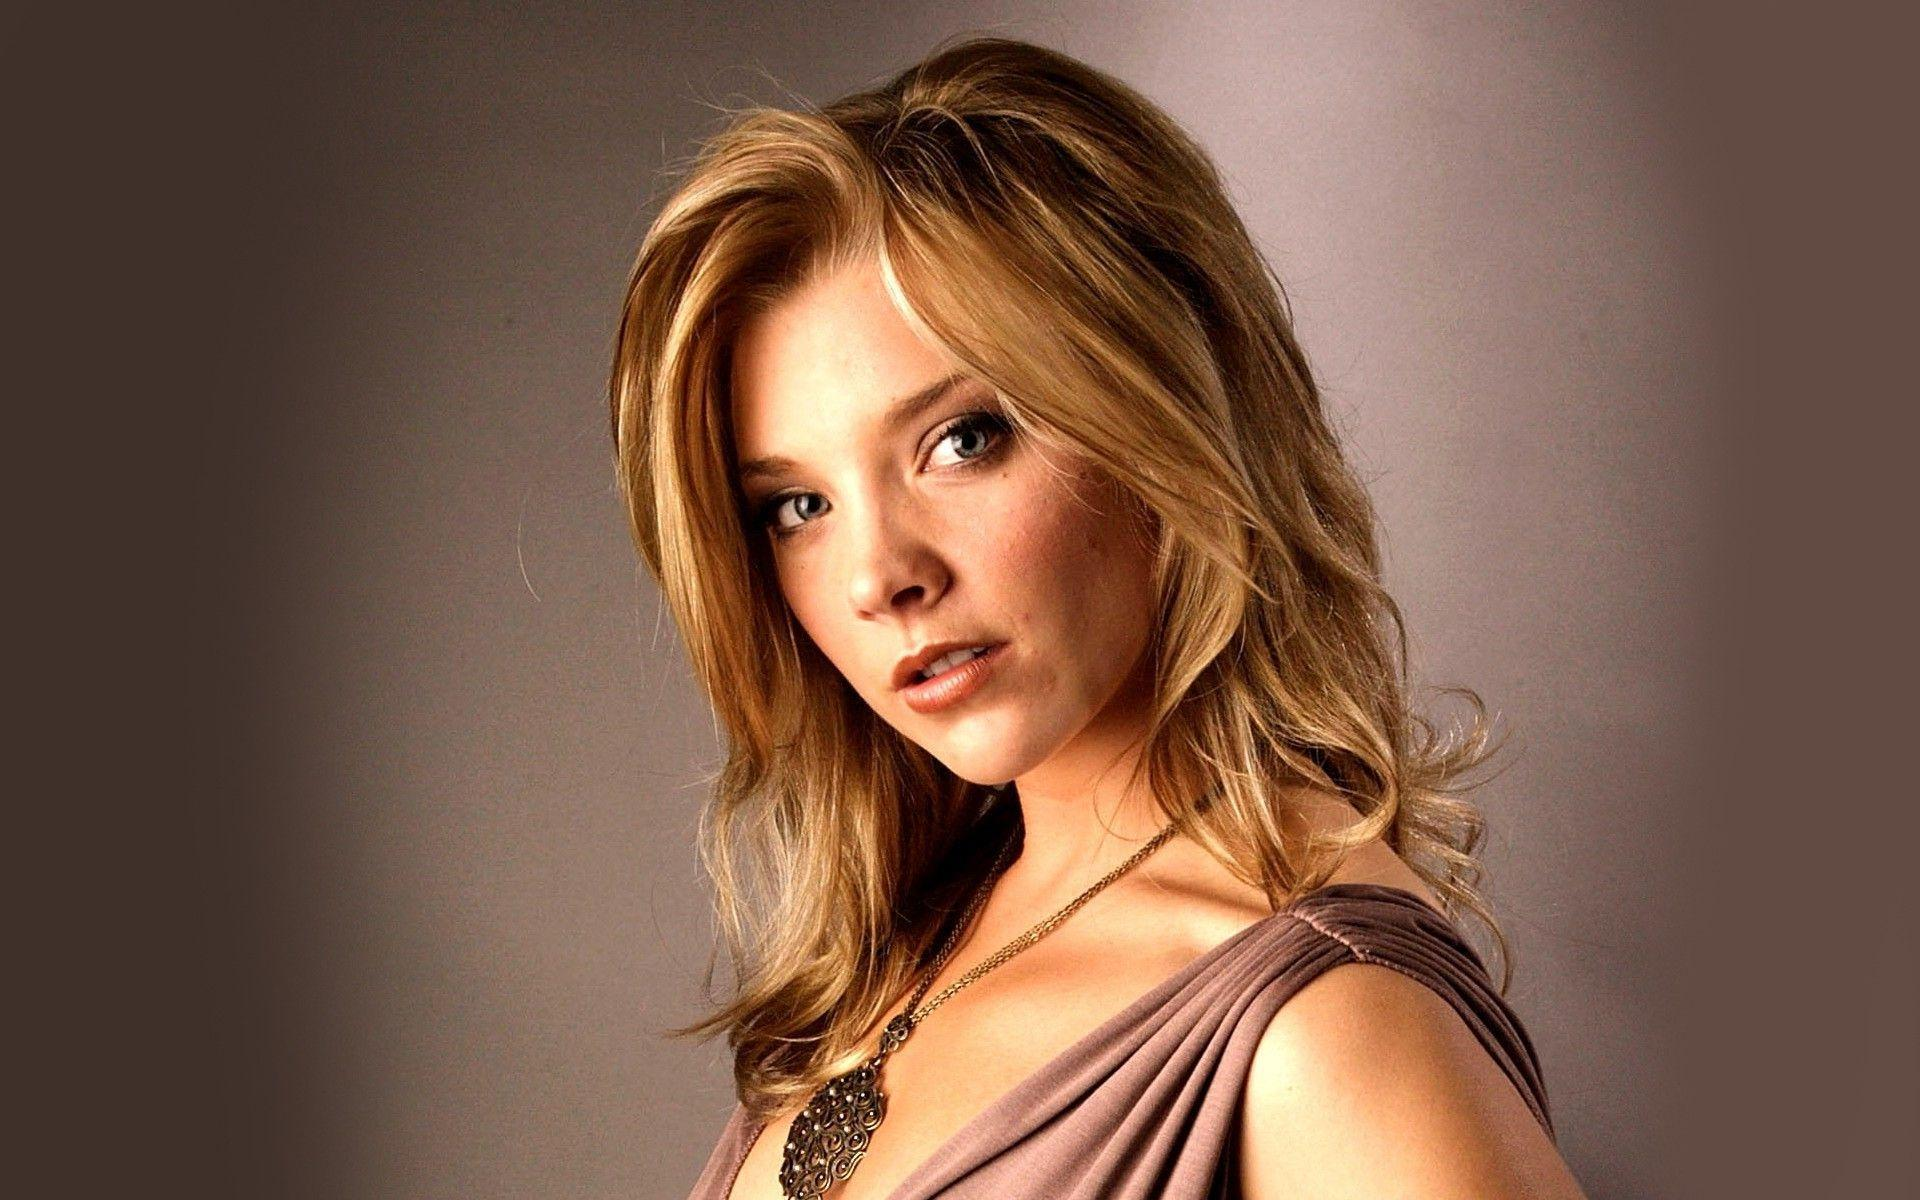 The Other Boleyn Girl Hd Wallpaper Natalie Dormer Wallpapers Wallpaper Cave